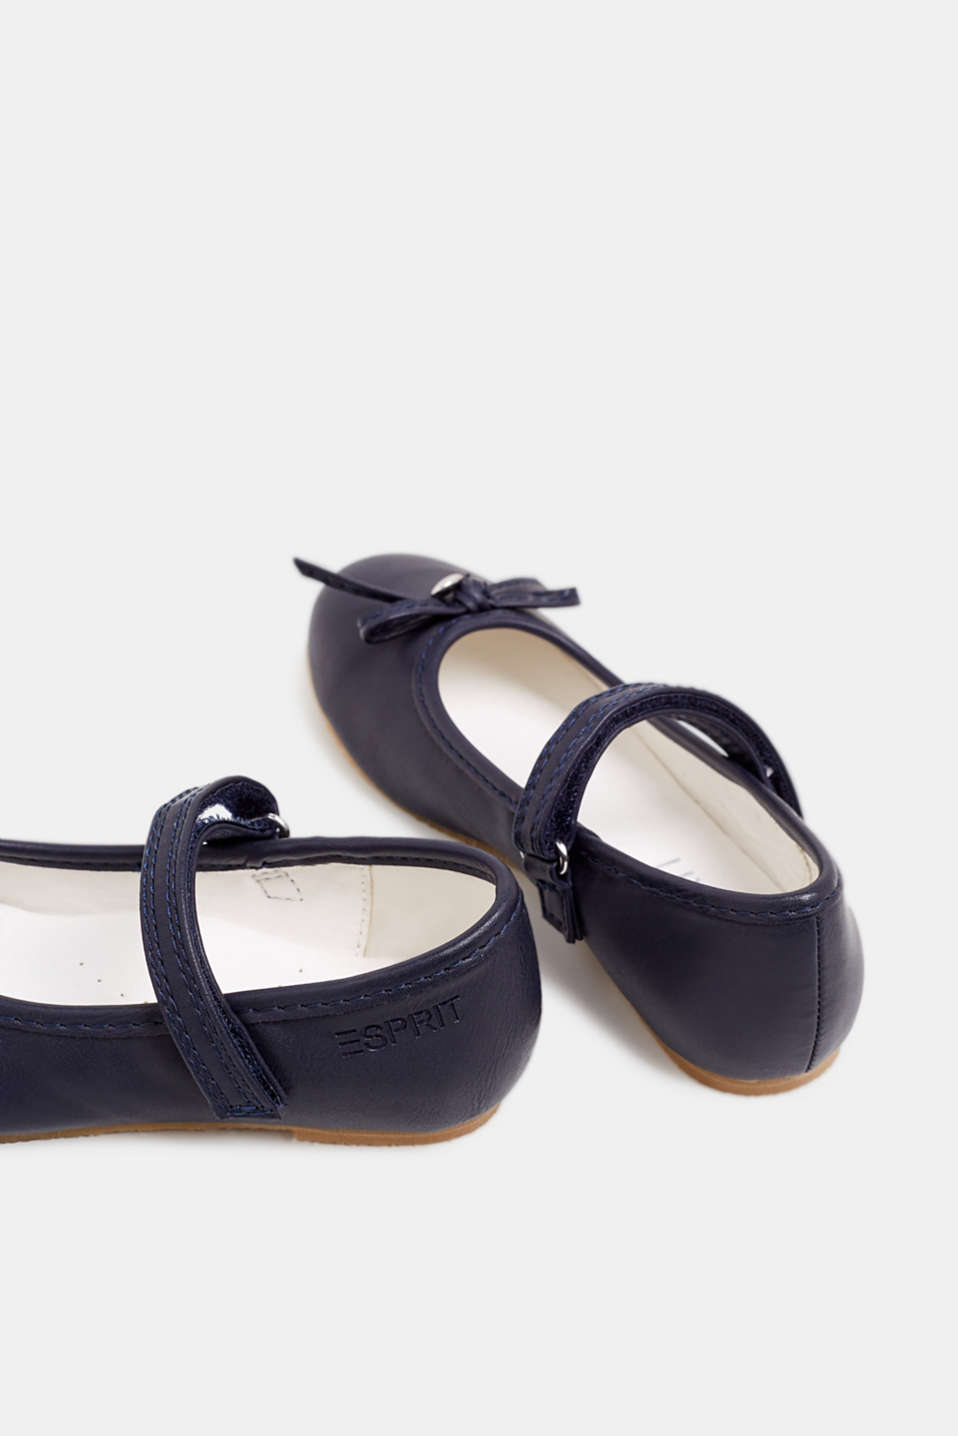 Ballerinas with Velcro straps, in faux leather, NAVY, detail image number 4